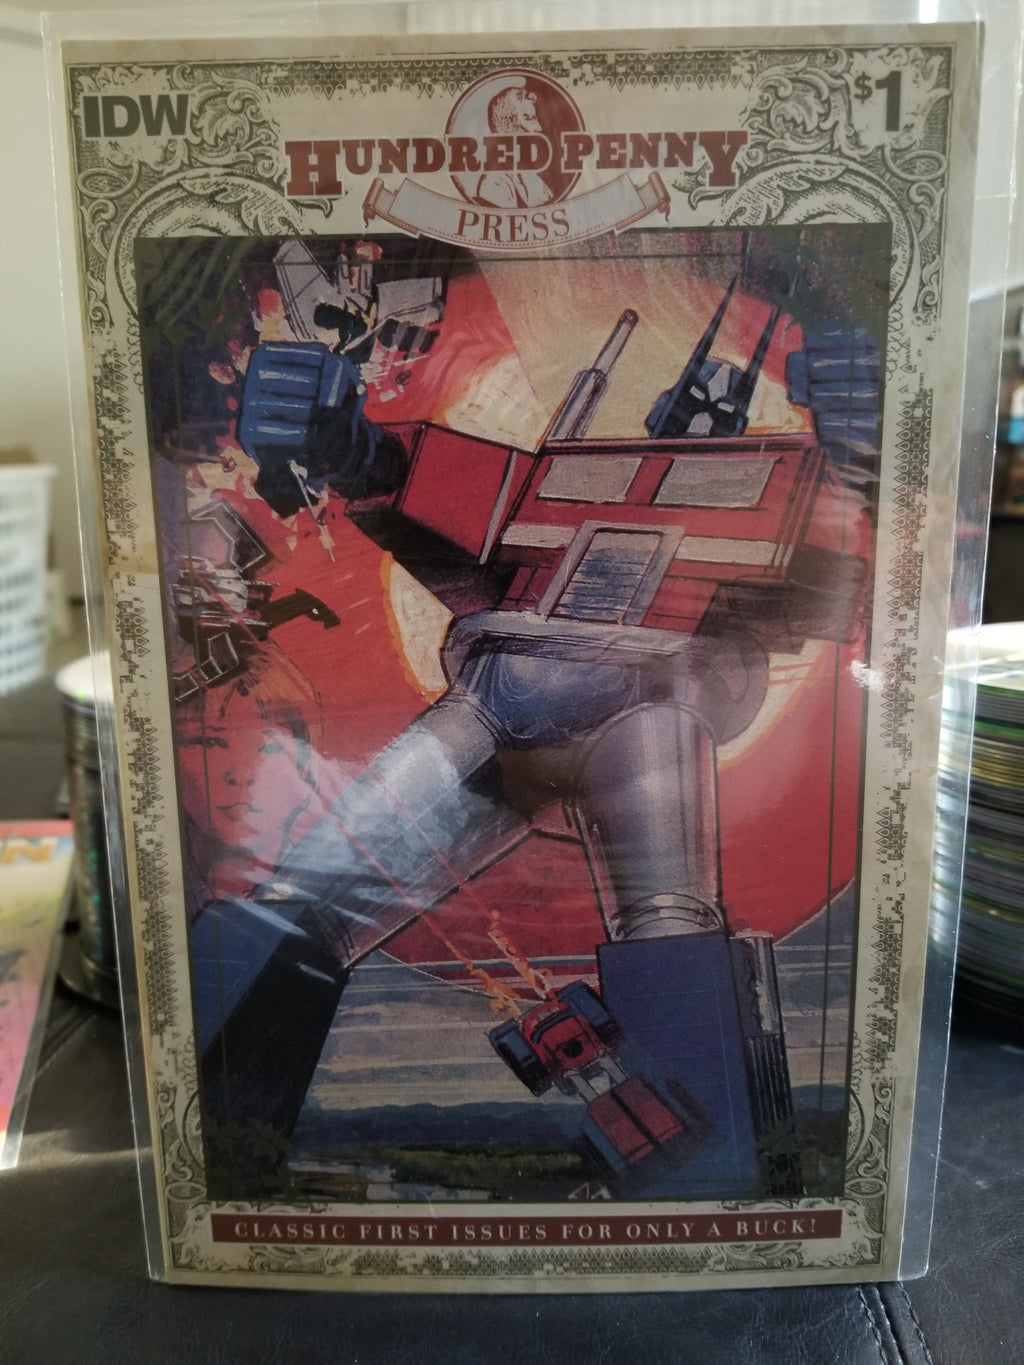 Transformers Hundred Penny Press Issue #1 2014 - IDW Comics